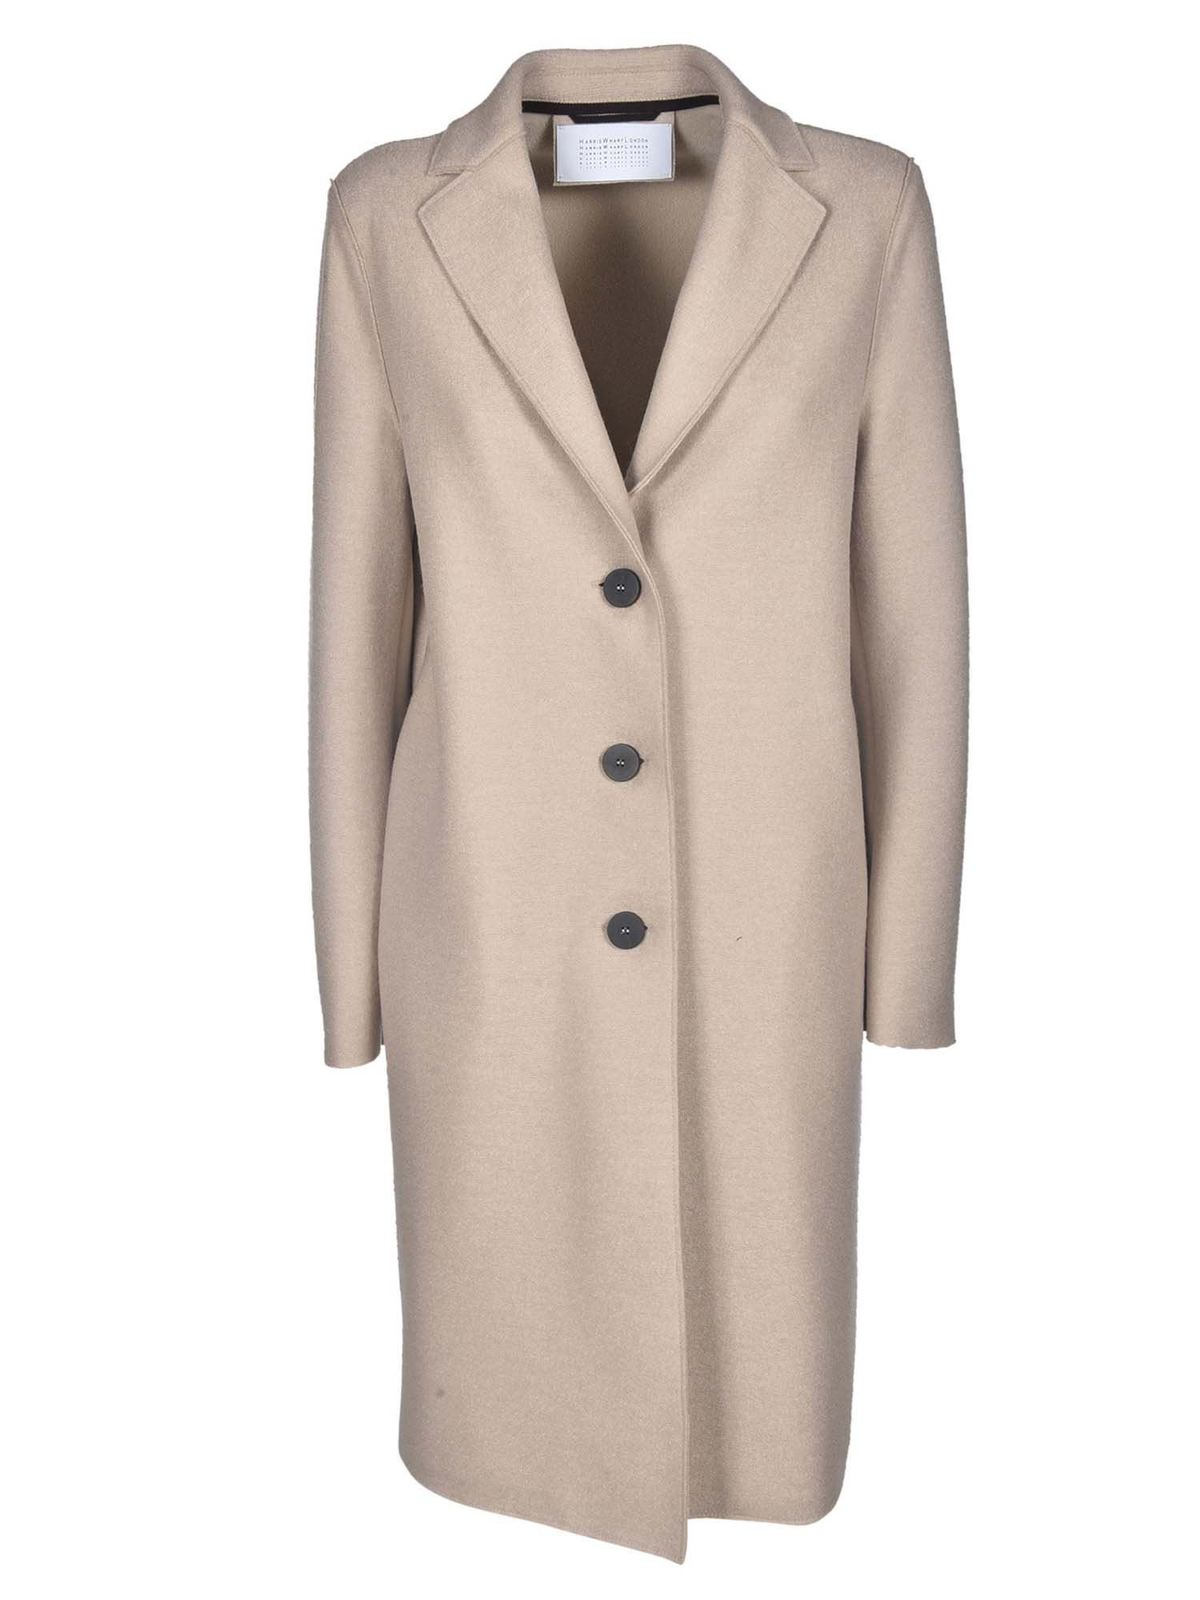 Harris Wharf London UNLINED COAT IN ALMOND COLOR